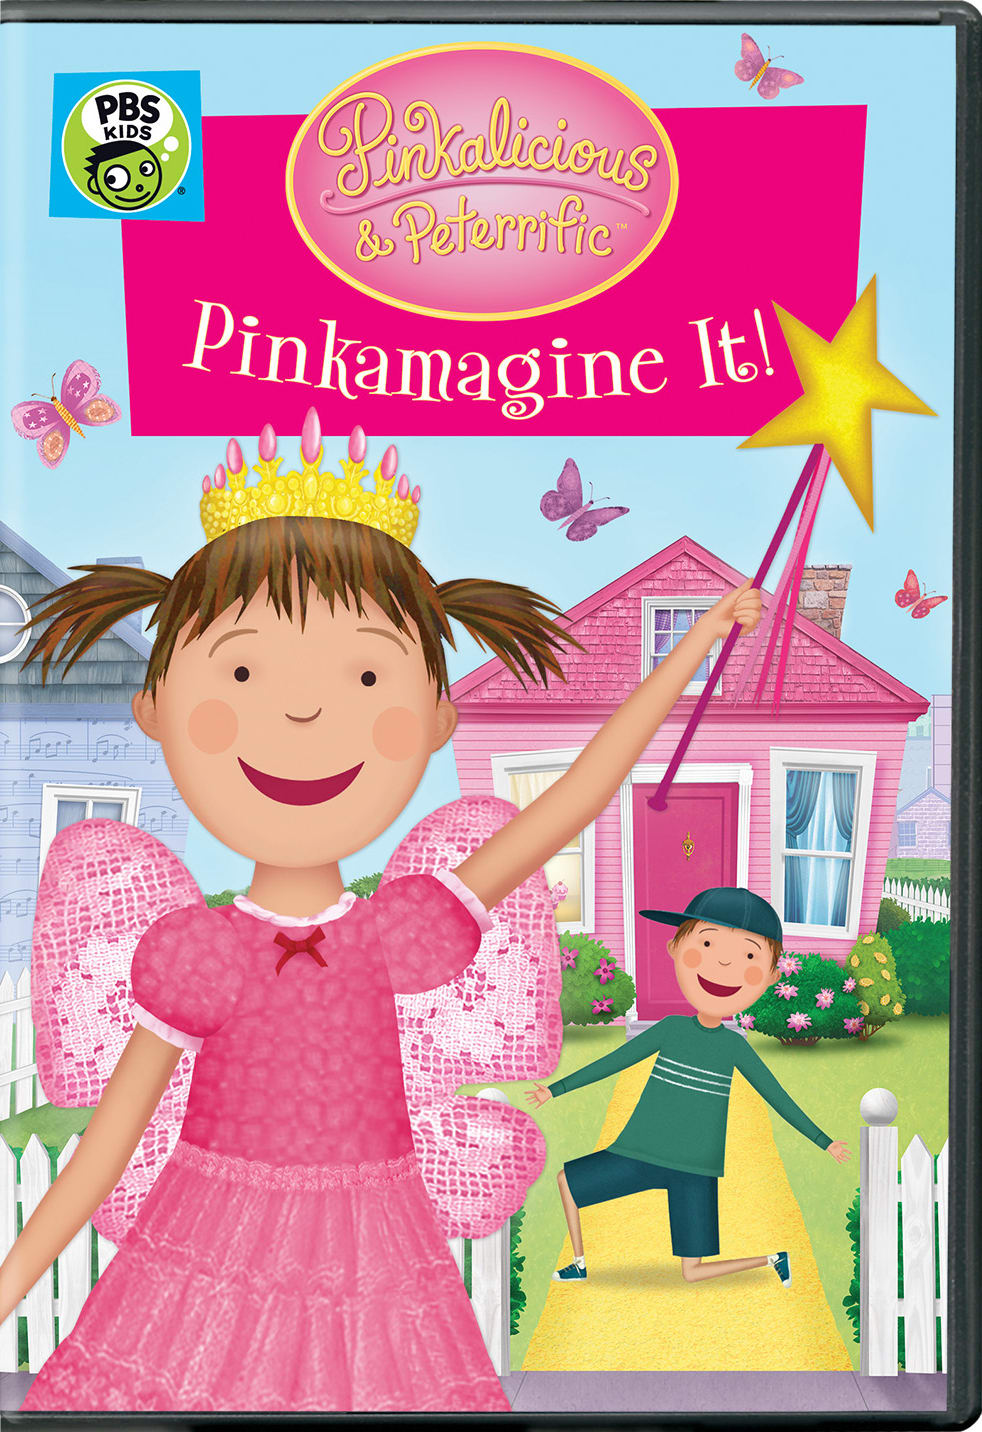 Pinkalicious & Peterrific: Pinkamagine It! [DVD]